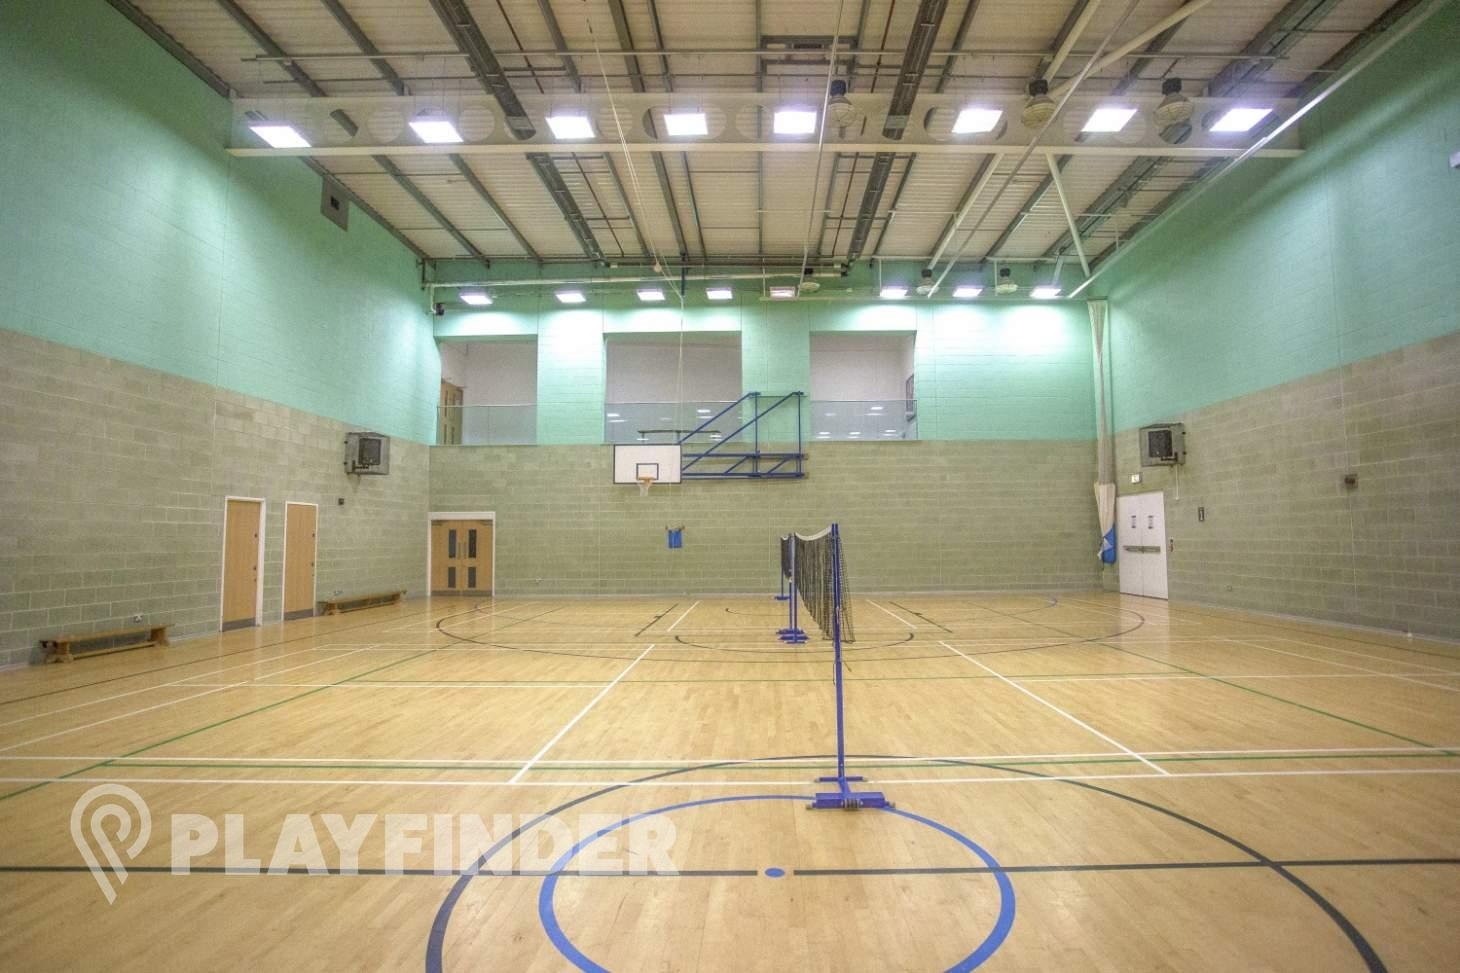 Sidcup Leisure Centre Indoor basketball court